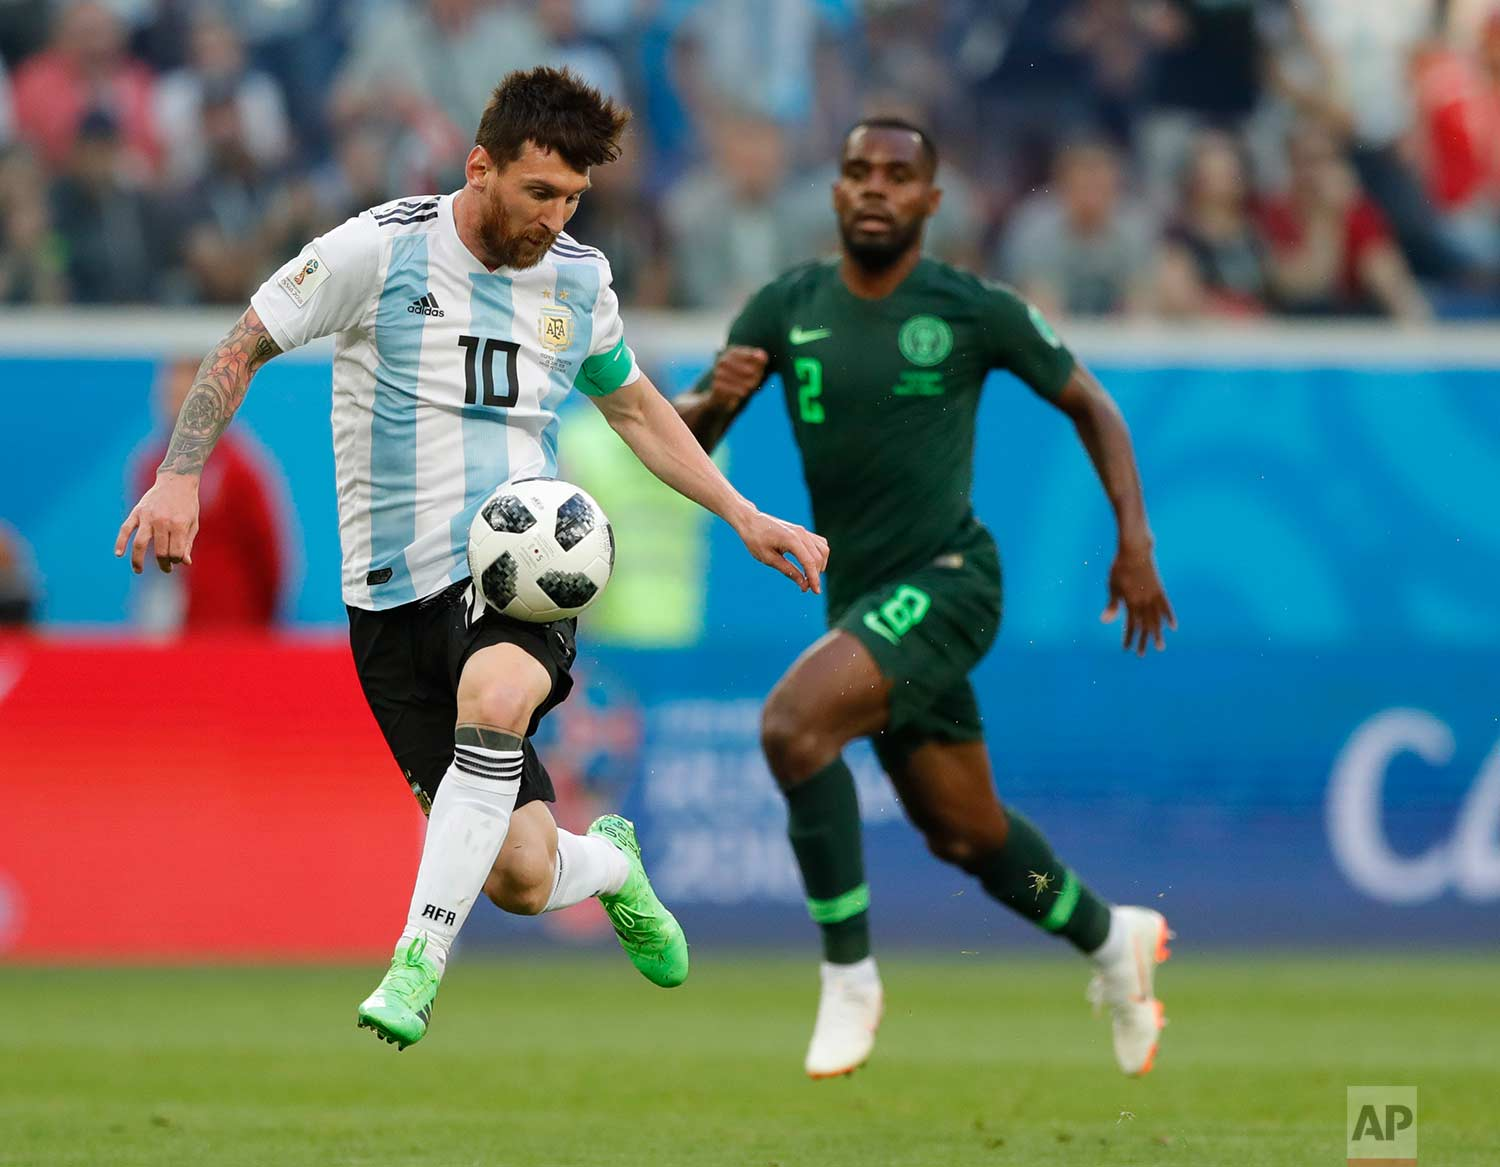 Argentina's Lionel Messi controls the ball during the group D match between Argentina and Nigeria, at the 2018 soccer World Cup in the St. Petersburg Stadium in St. Petersburg, Russia, Tuesday, June 26, 2018. (AP Photo/Ricardo Mazalan)